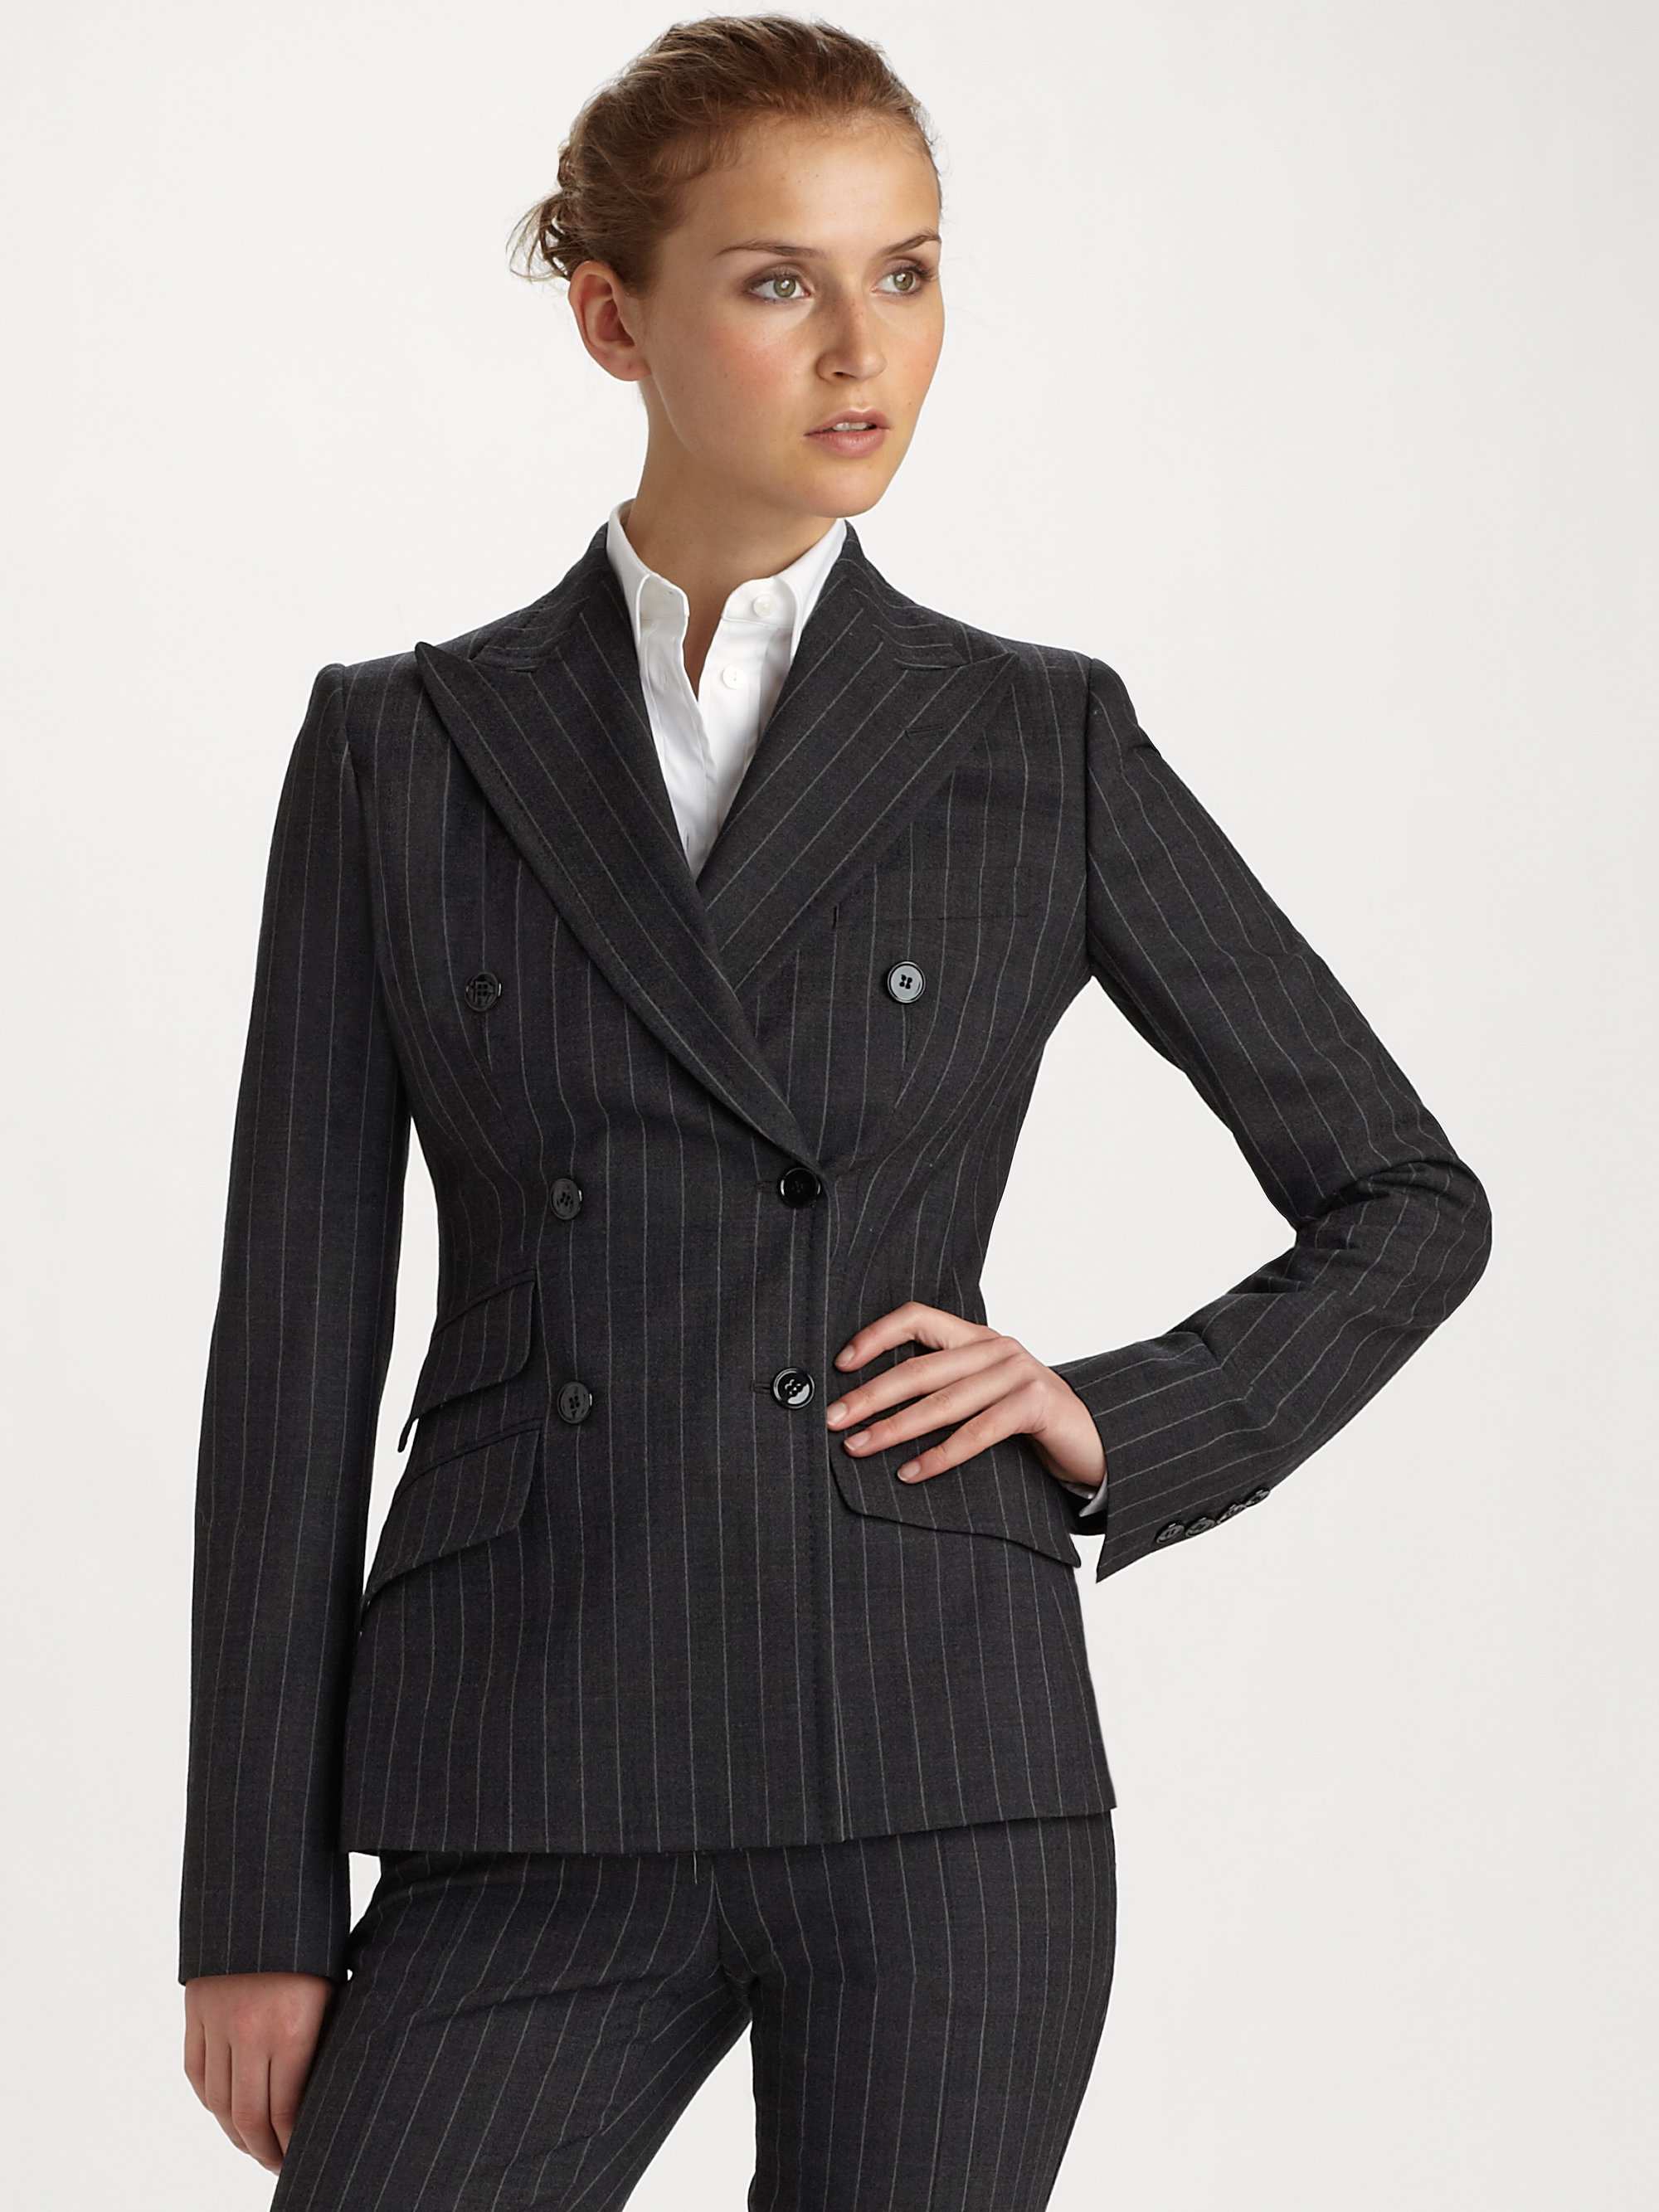 Dolce & gabbana Double-breasted Pinstripe Jacket in Gray | Lyst